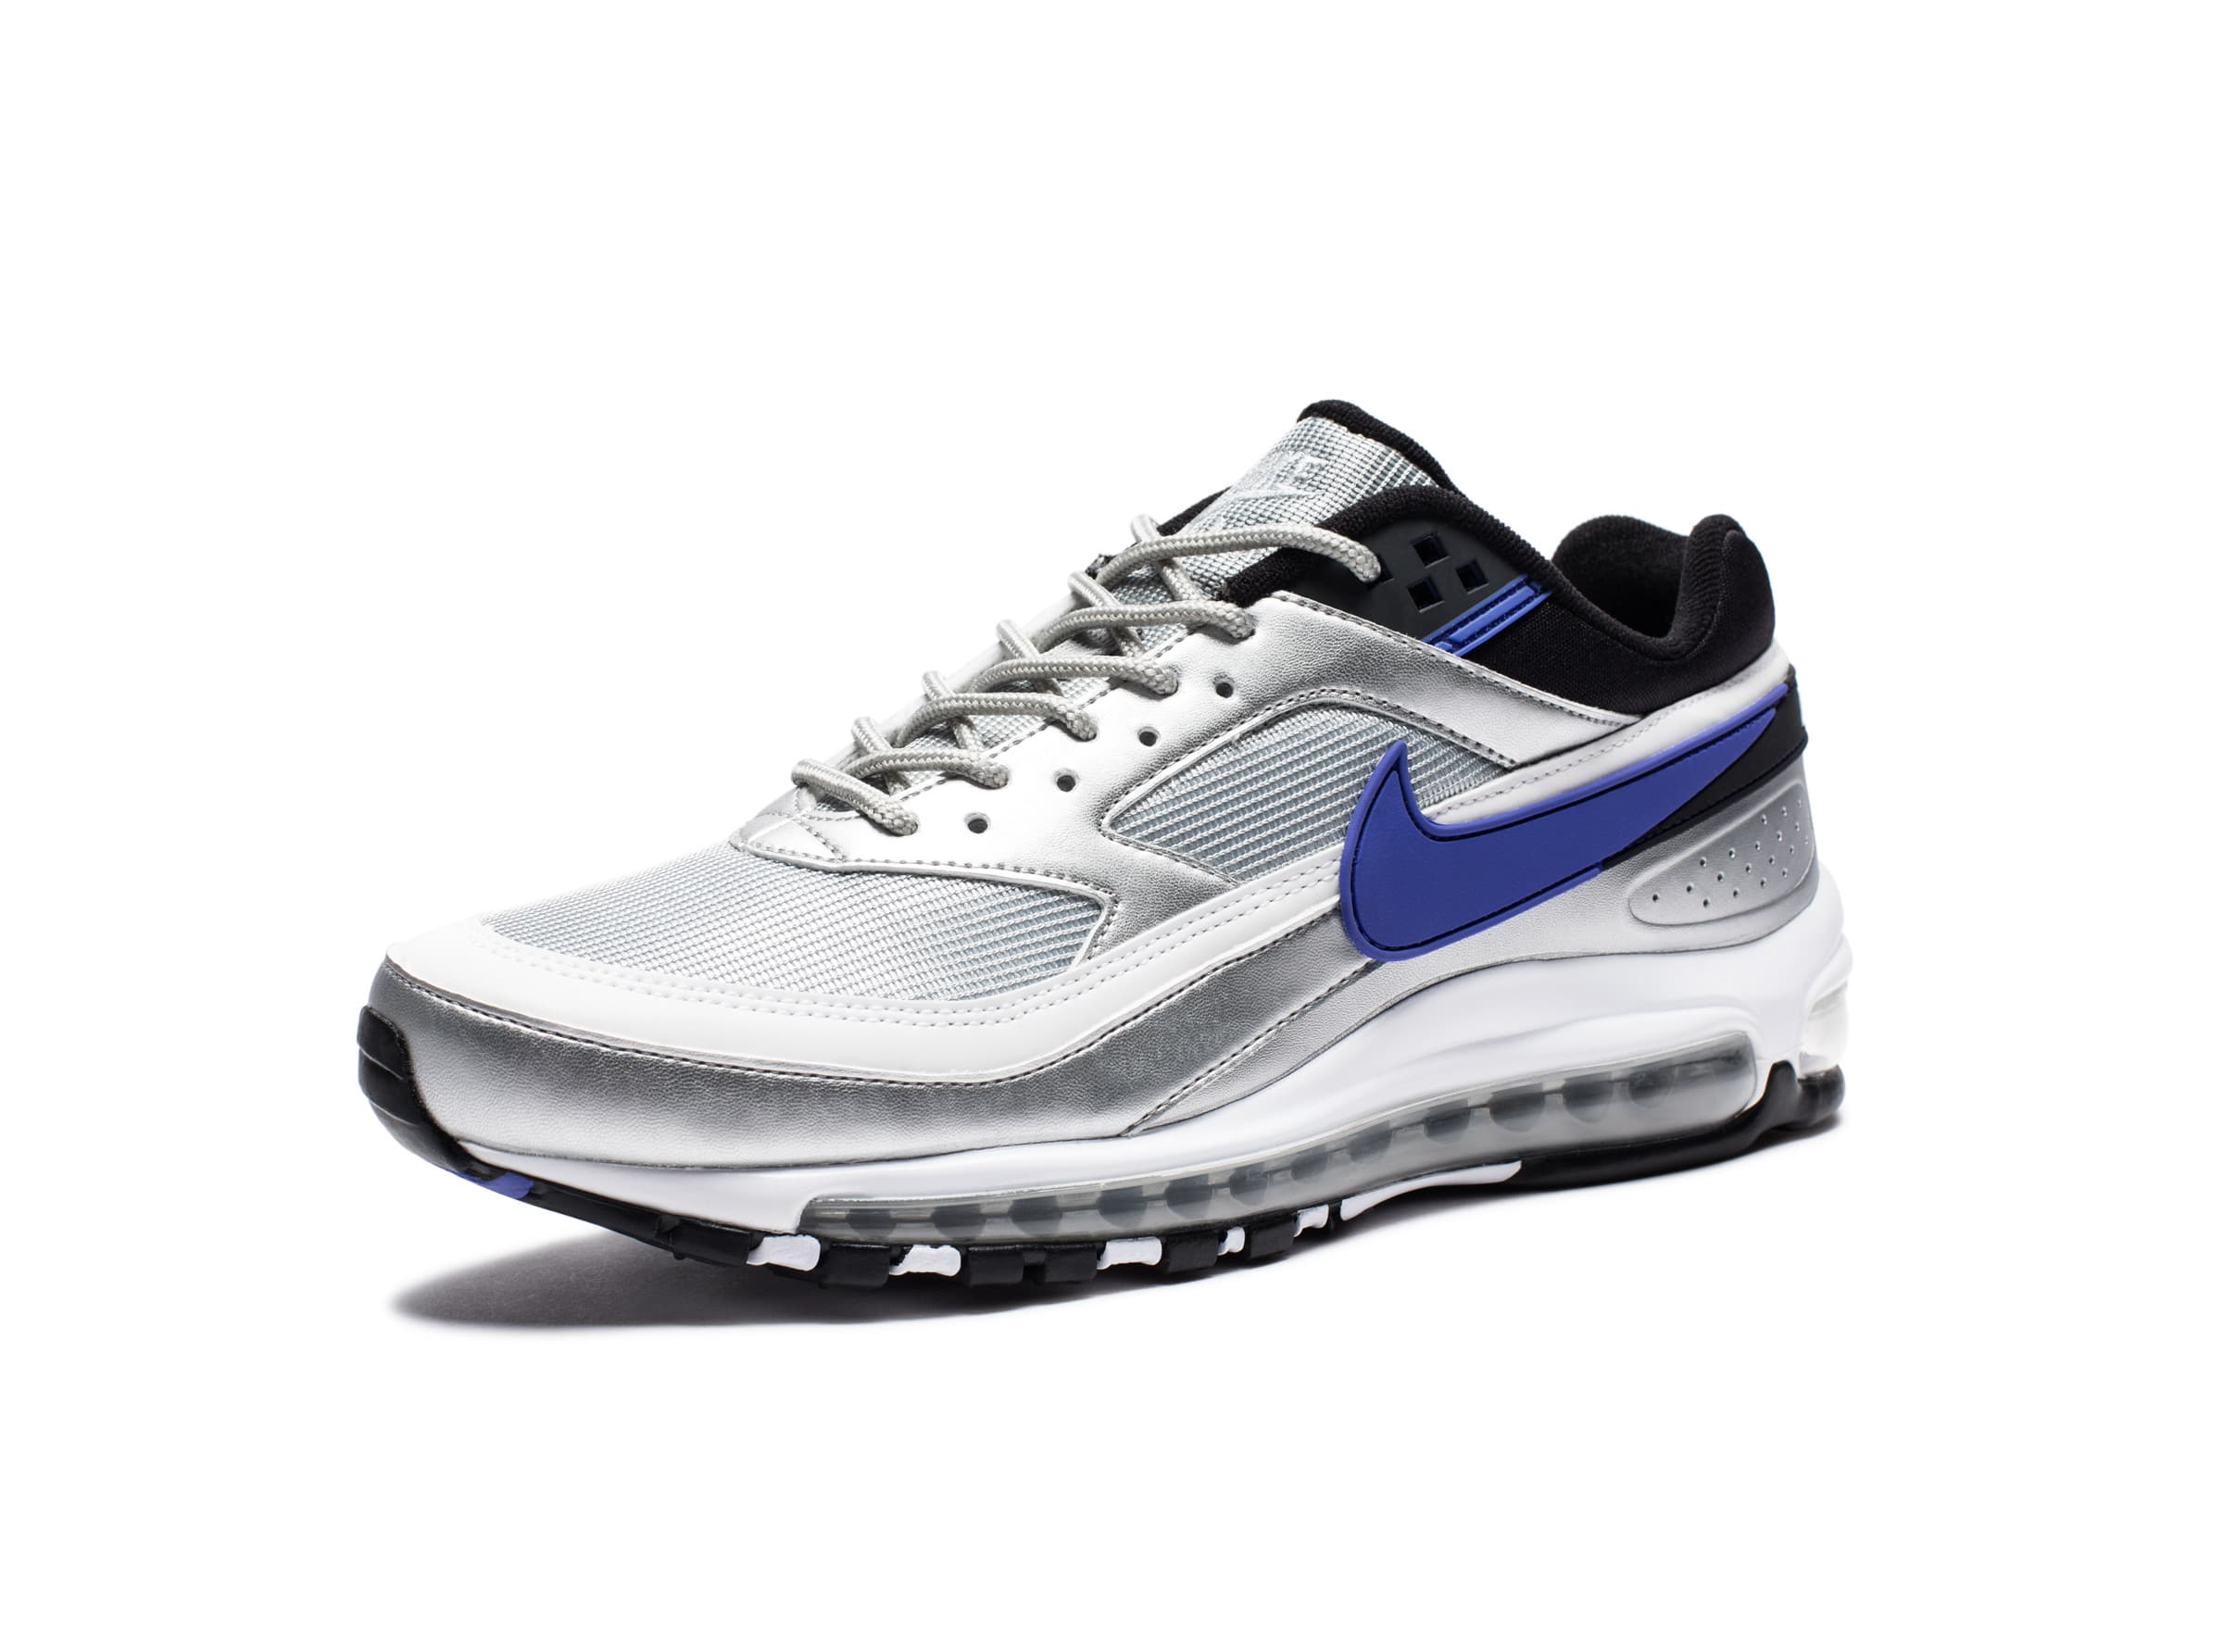 finest selection 45542 05fe1 AIR MAX 97/BW - METALLICSILVER/PERSIANVIOLET/BLACK | Undefeated